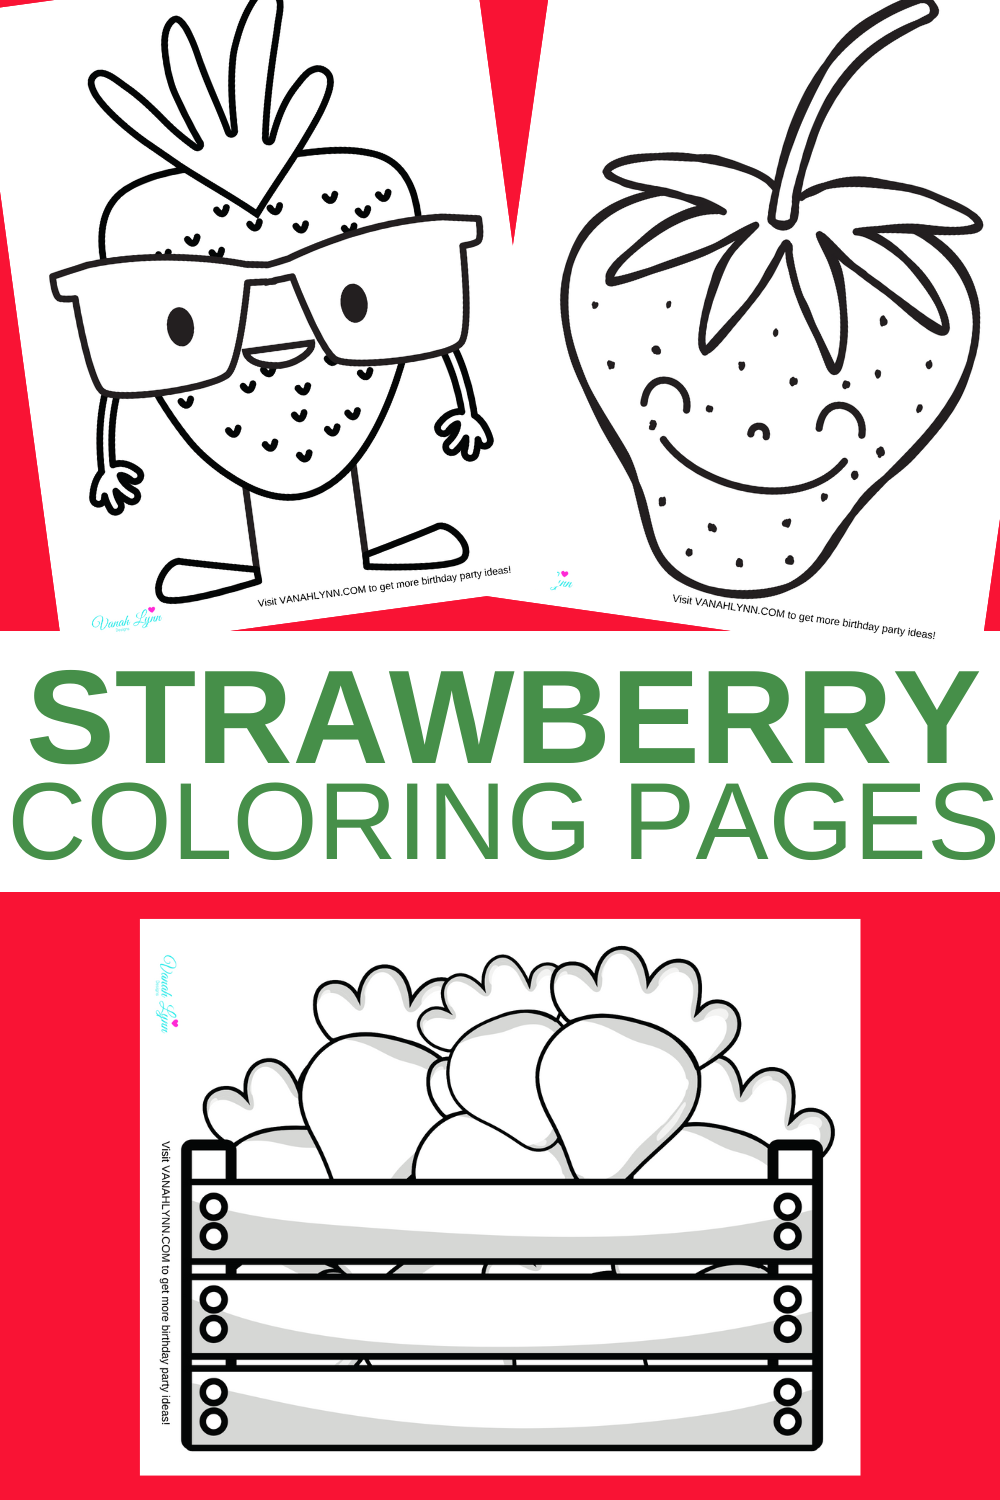 free download: strawberry coloring sheets for a birthday party